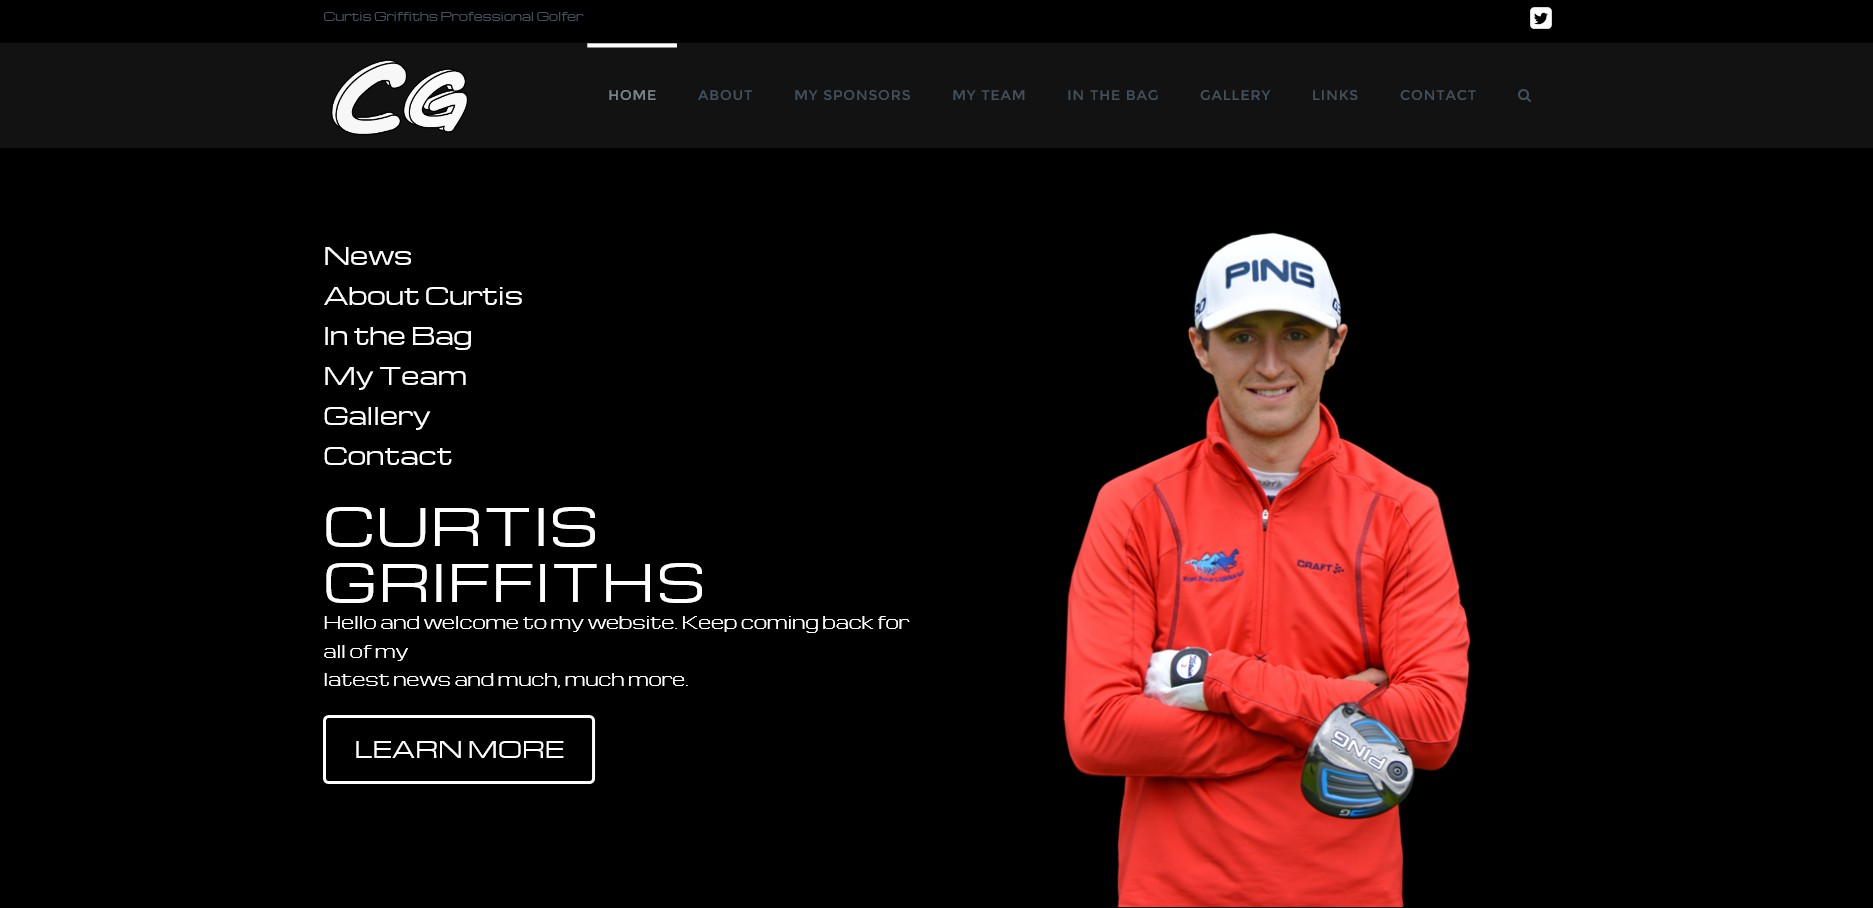 Website for golfer Curtis Griffiths